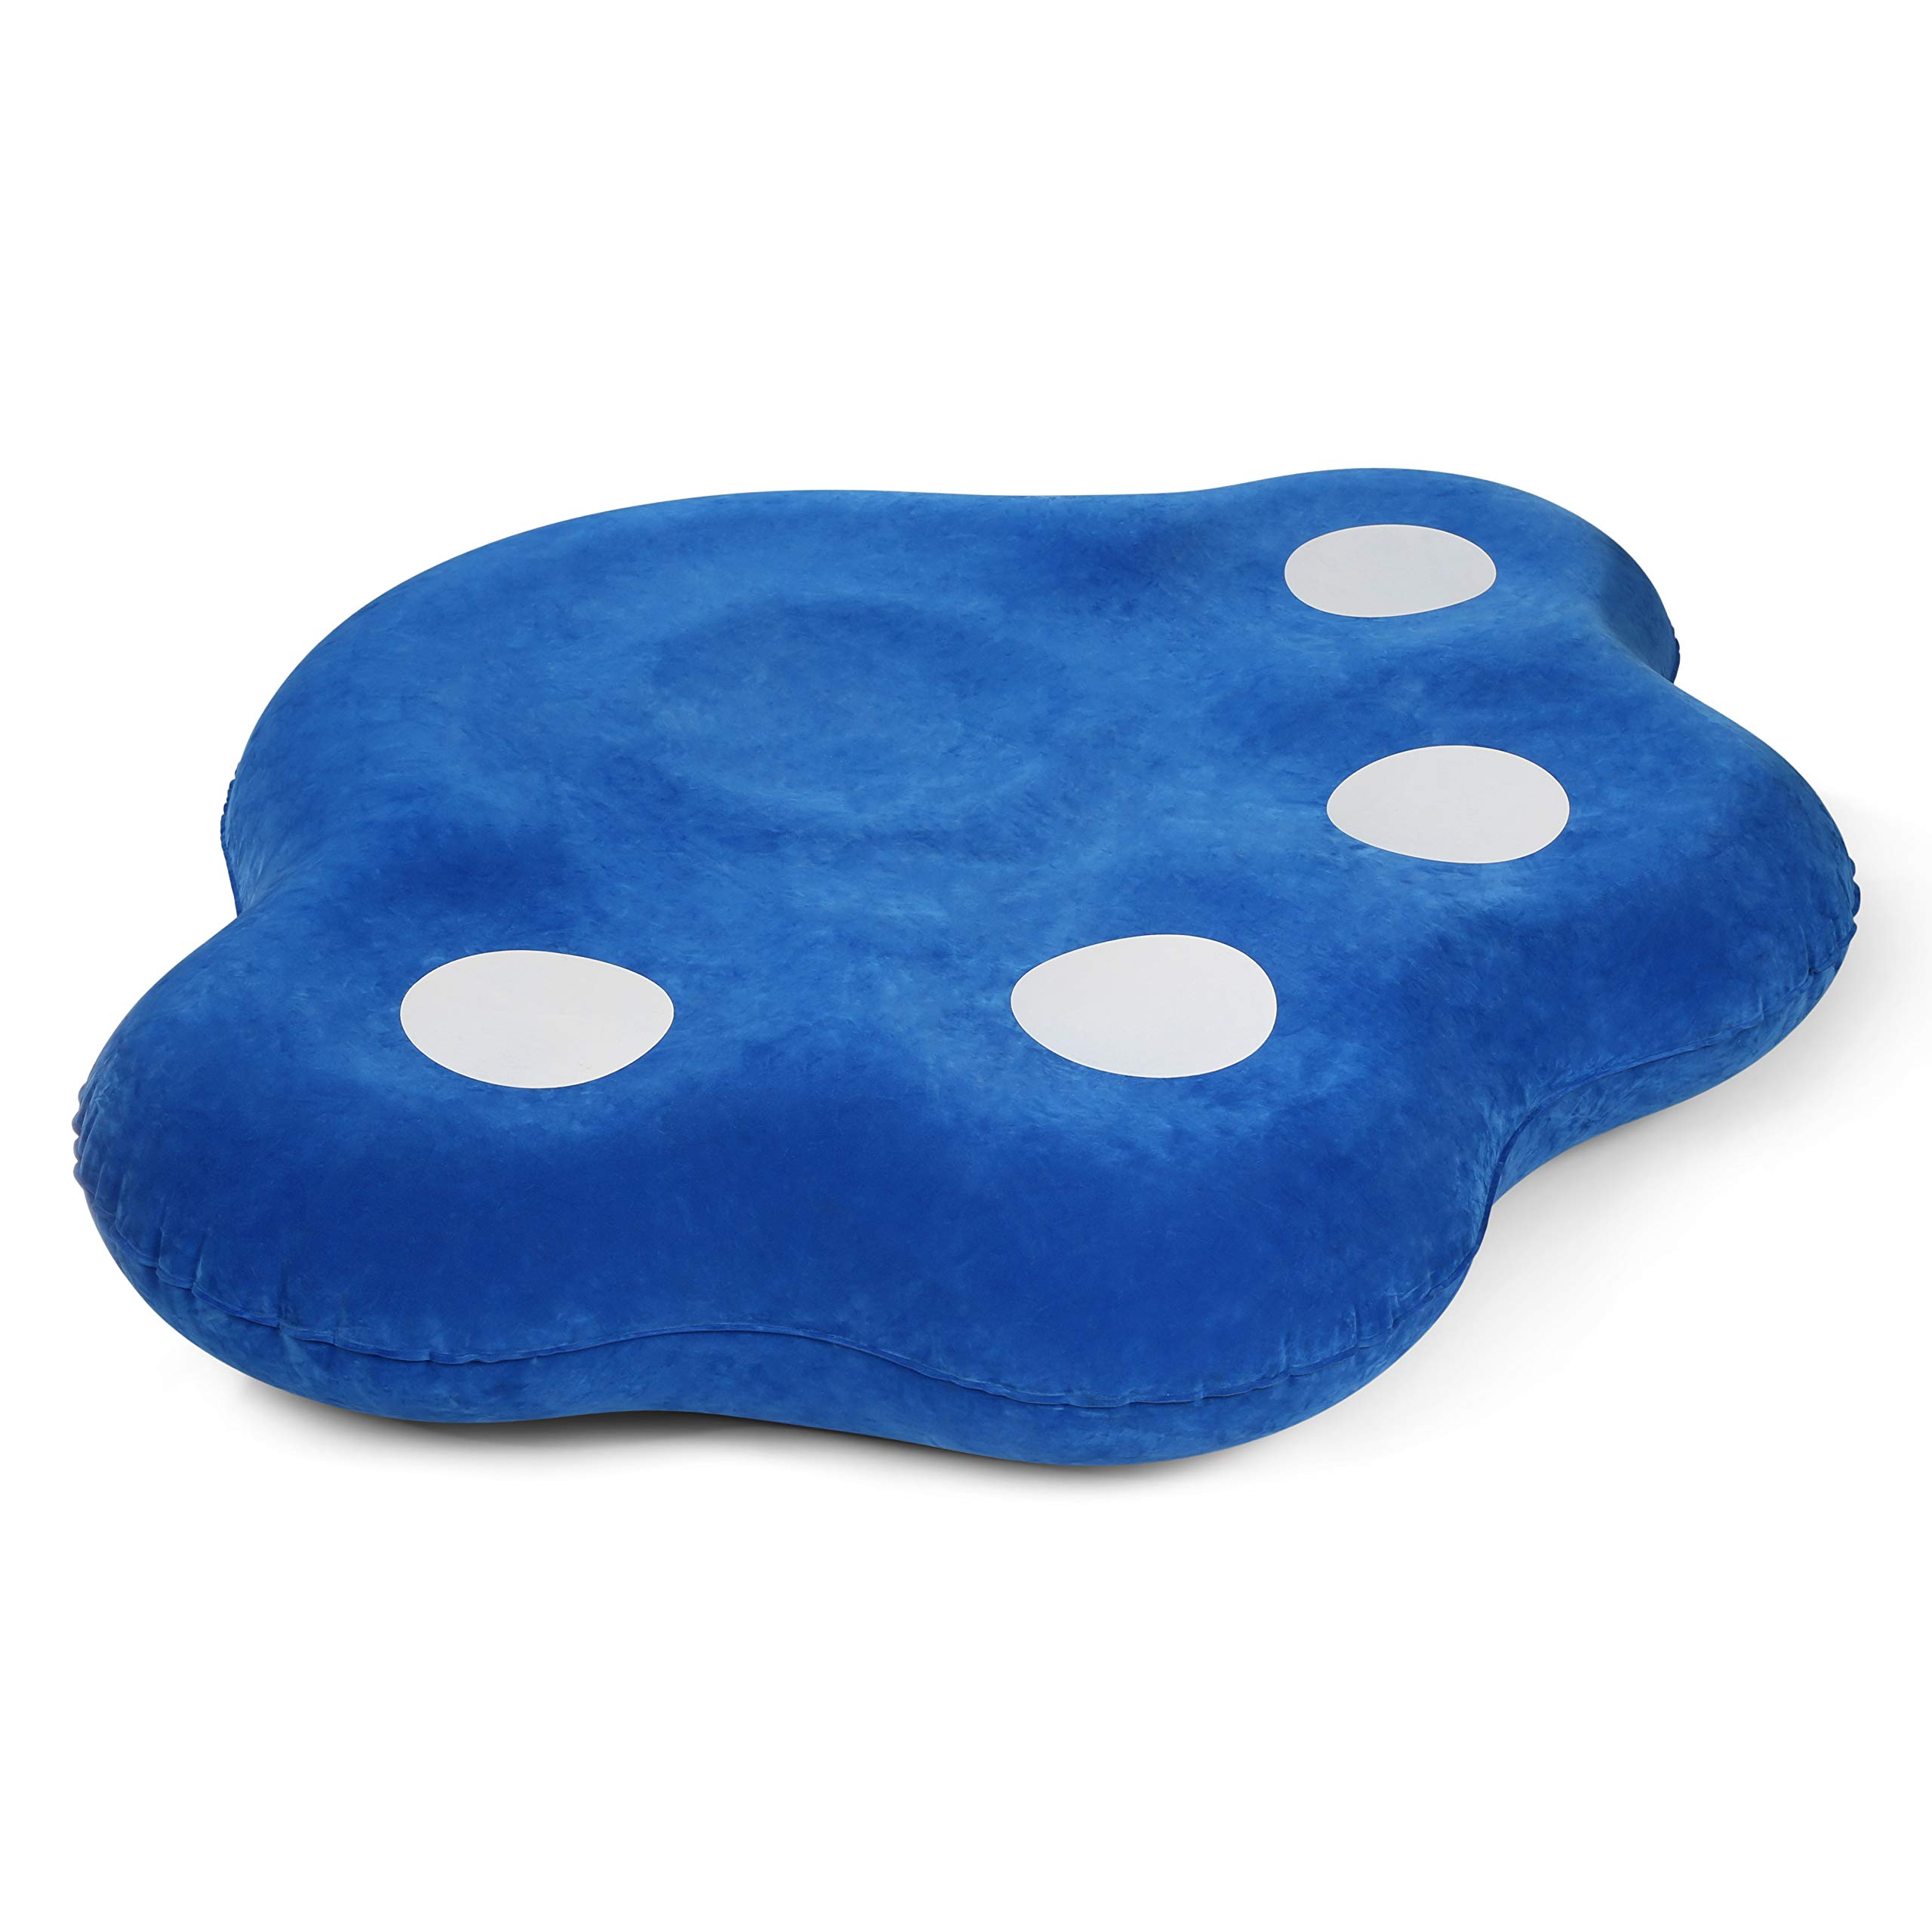 Milliard Dog Pool Float Inflatable Ride On Paw Raft for Pets Swimming by Milliard